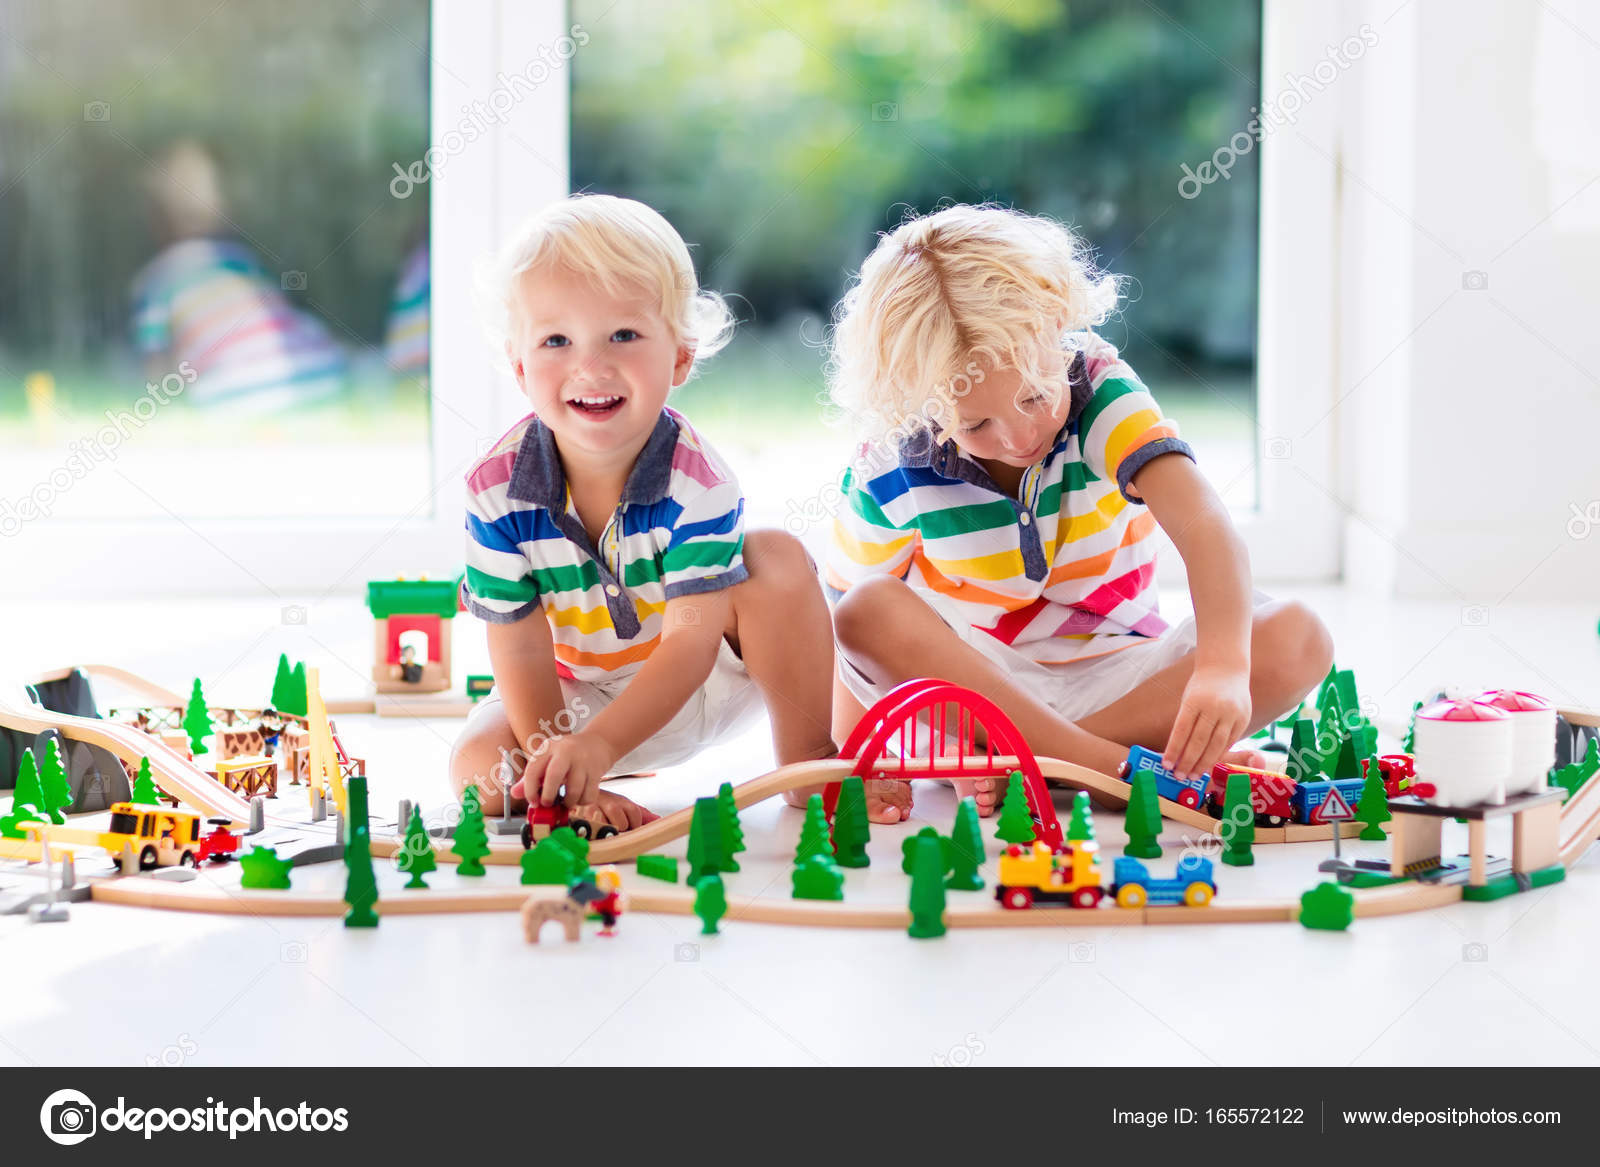 Children Play Wiht Toy Train Kids Wooden Railway Stock Photo